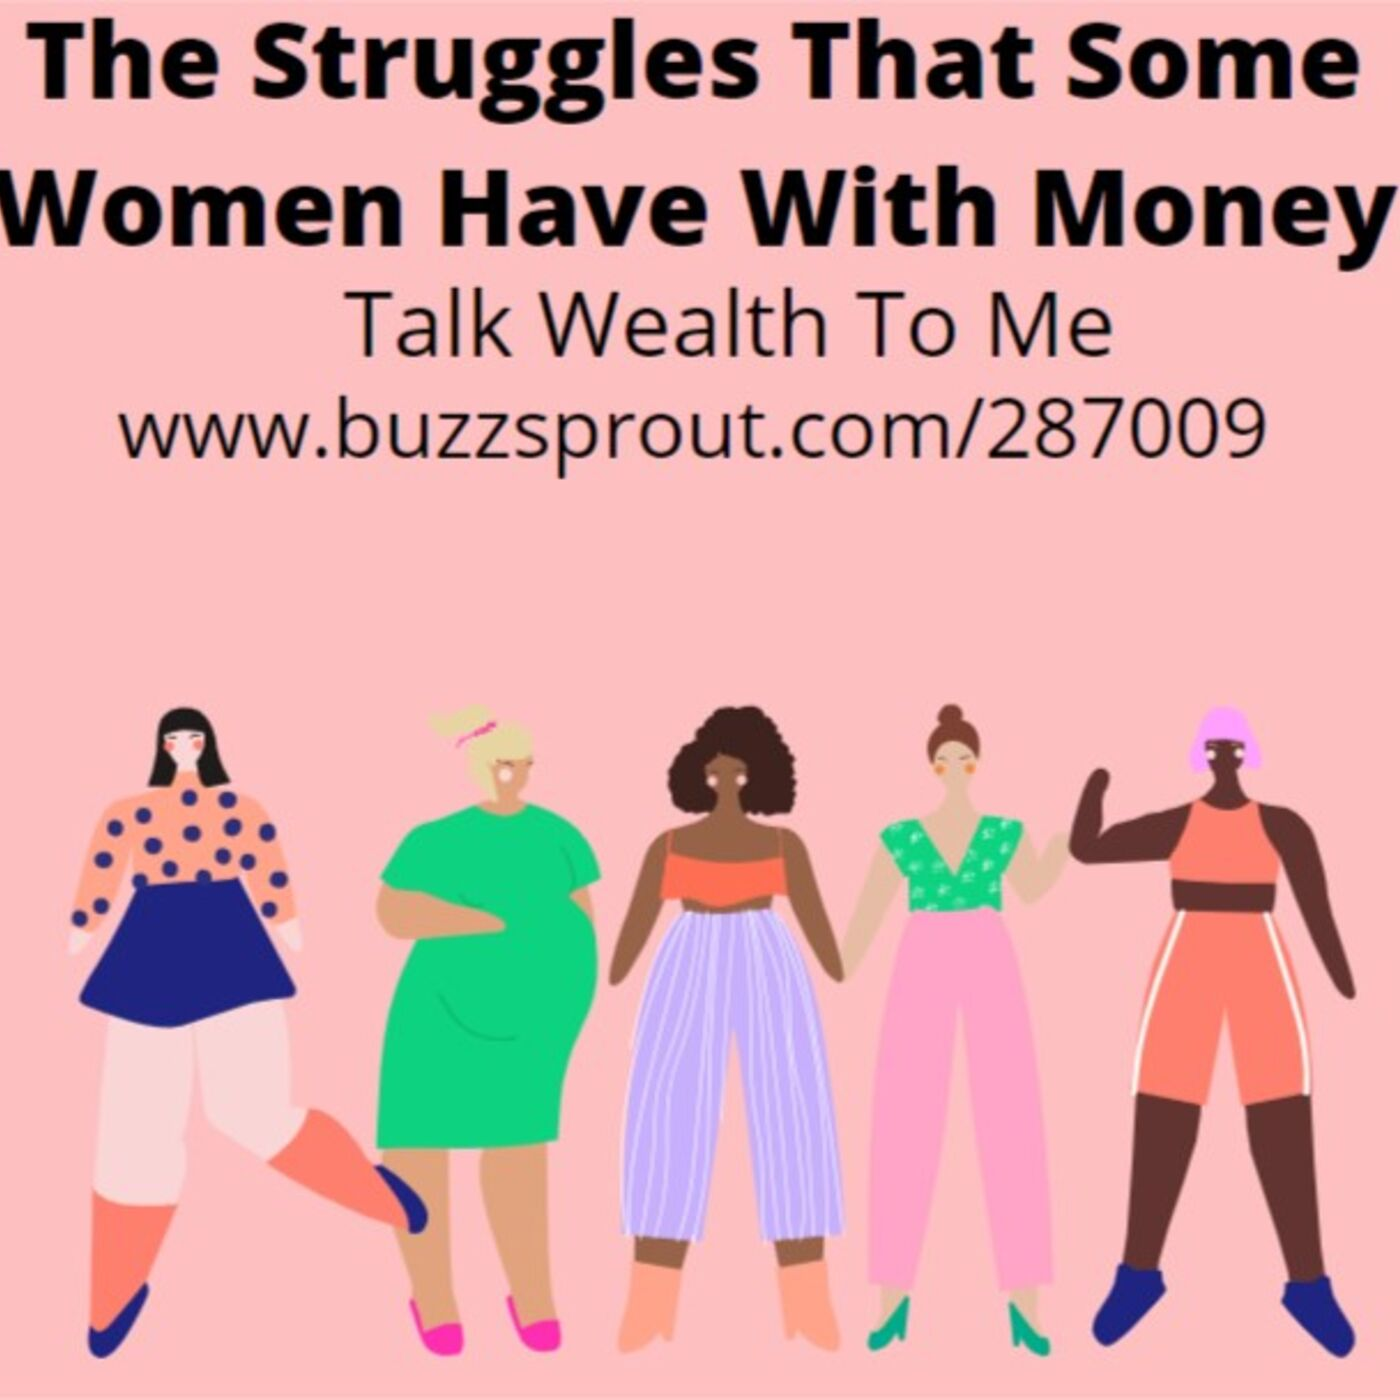 #065 The Struggles That Some Women Have With Money